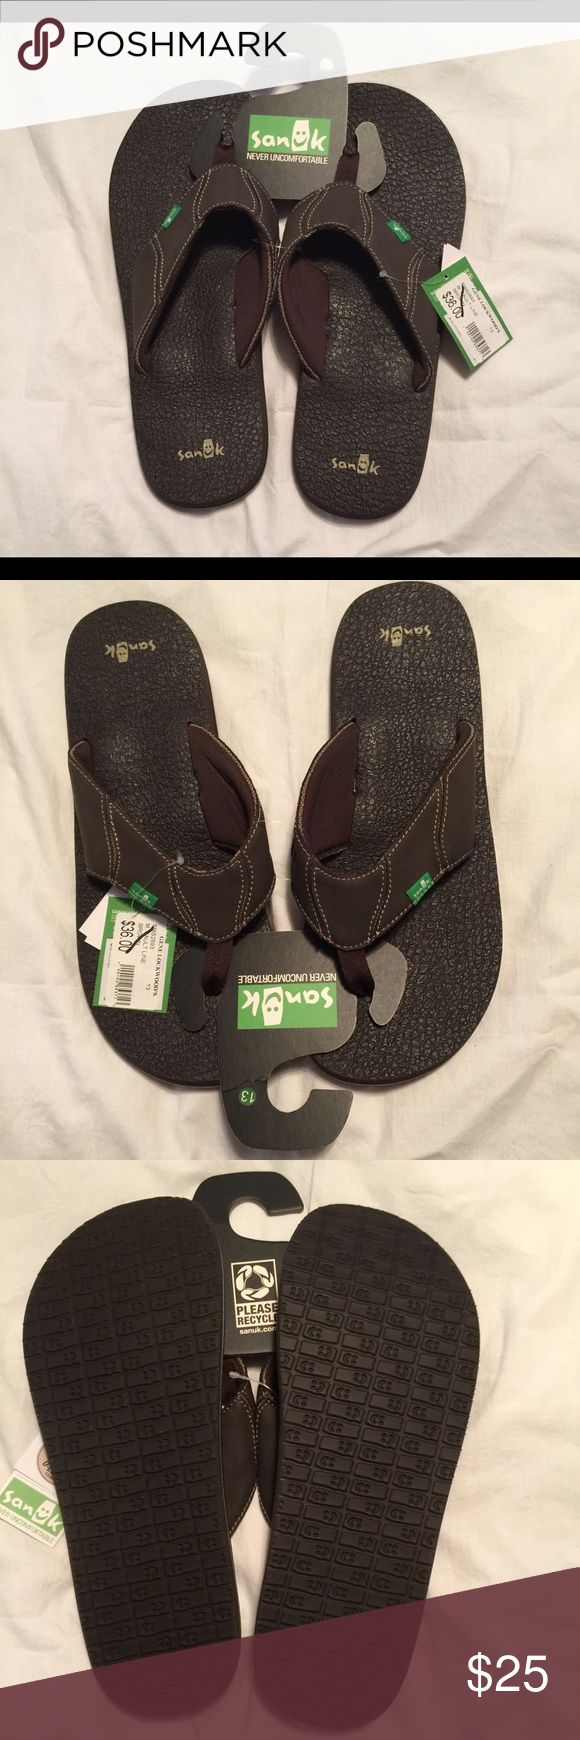 Men's Sanuk Flip flops Brown with yoga mat soles. So comfortable. BNWT! Sanuk Shoes Sandals & Flip-Flops